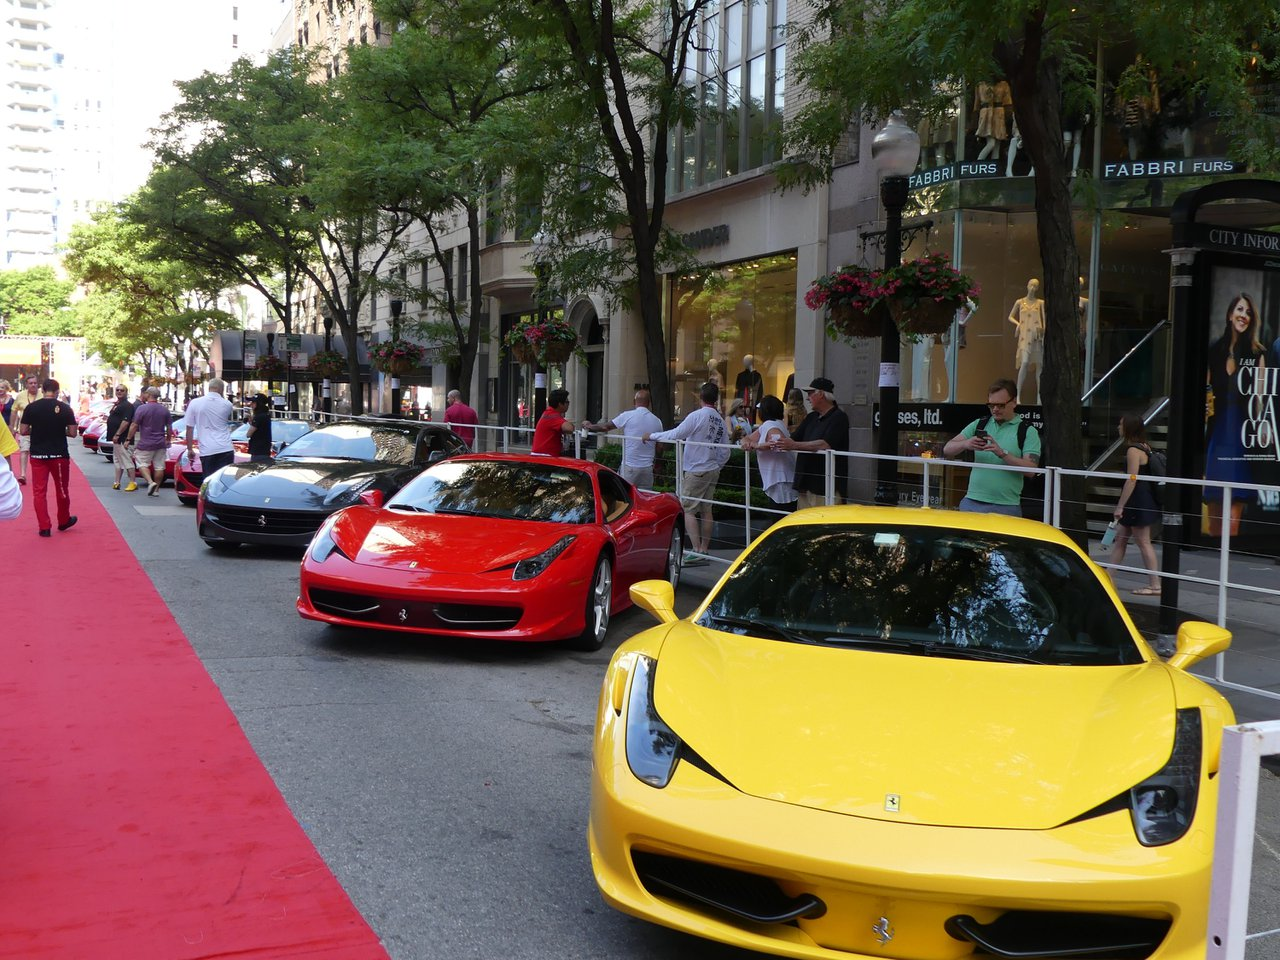 Ferraris On Oak Street photo Yellow car-P1010042.jpg